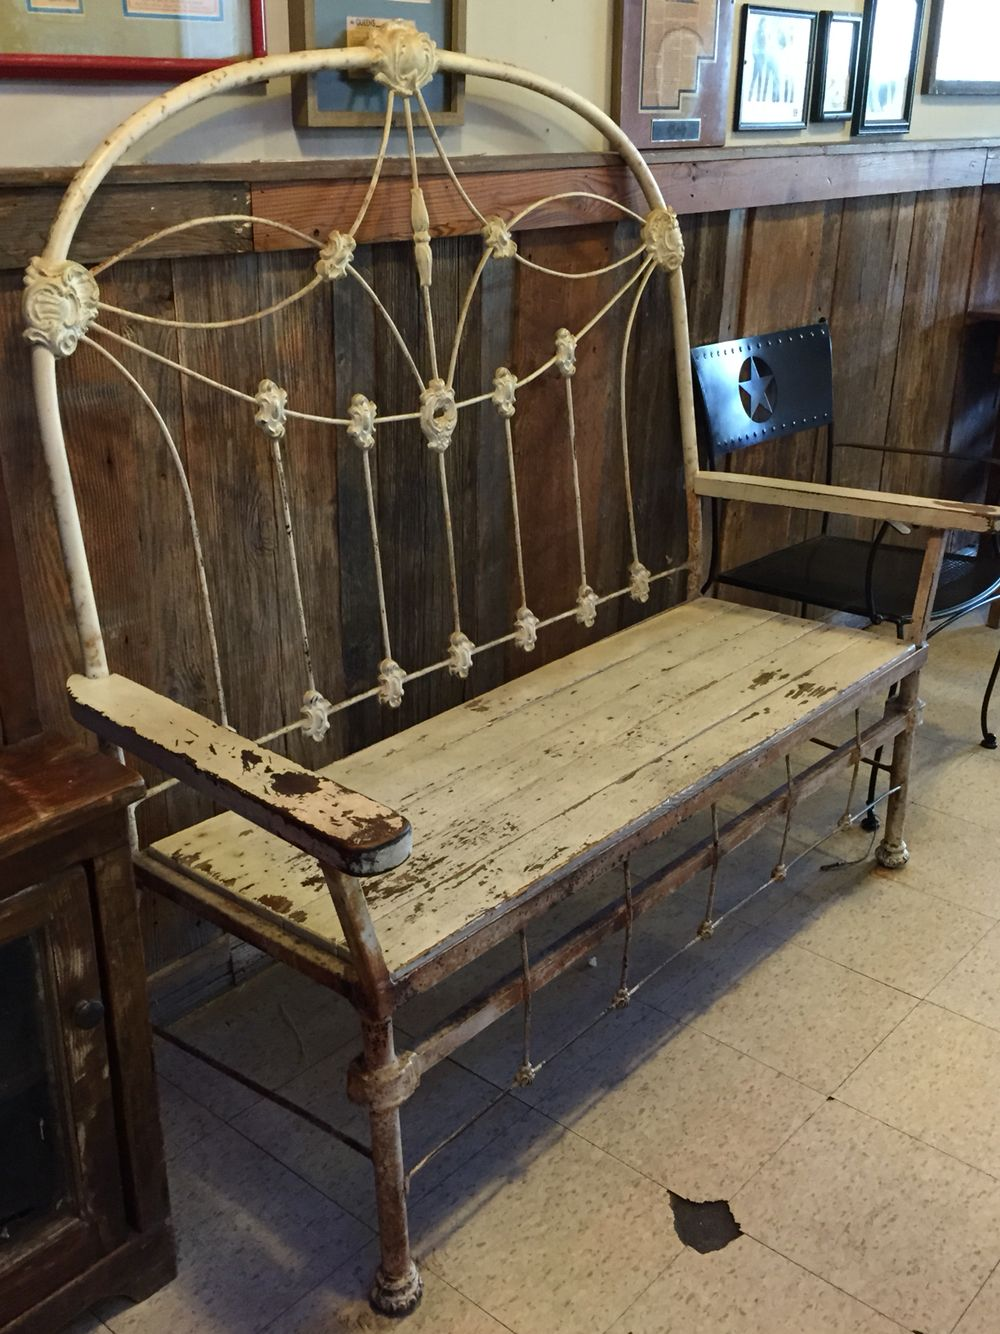 Groovy Antique Iron Bed Reclaimed Wood Made Into A Bench Short Links Chair Design For Home Short Linksinfo